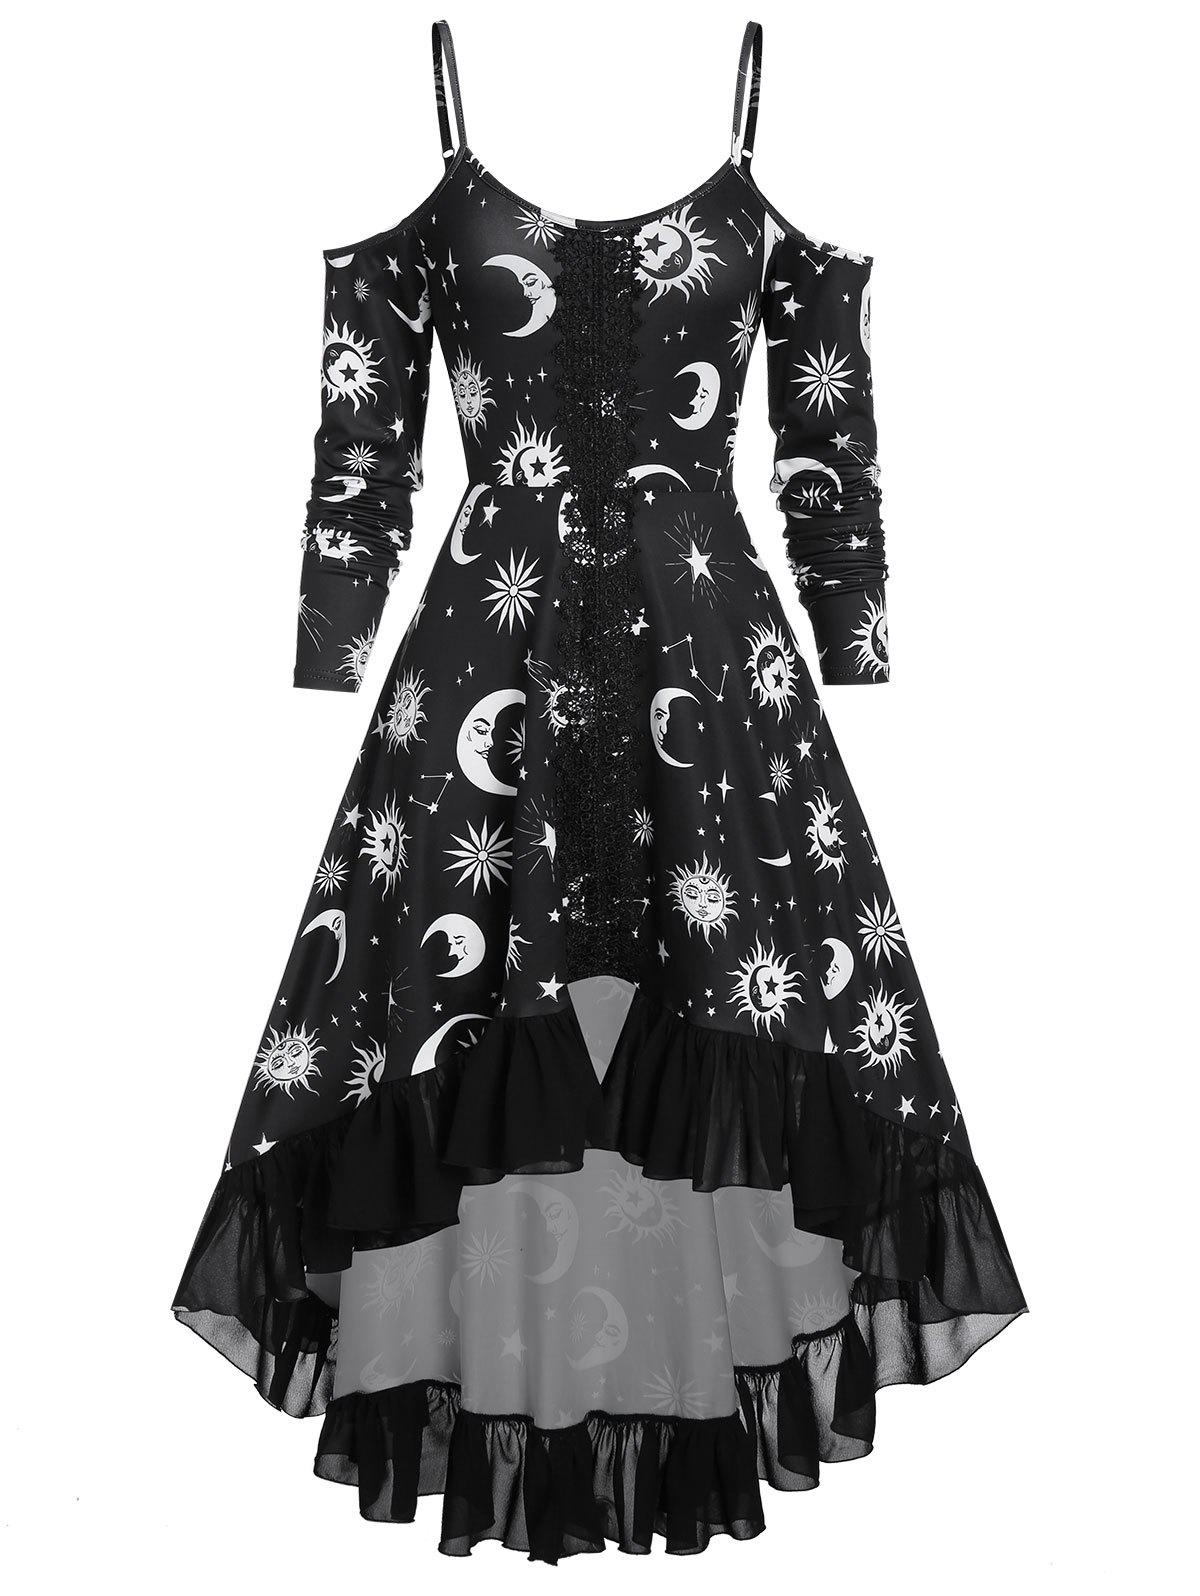 Unique Spaghetti Strap Open Shoulder Sun and Moon Print Gothic Dress